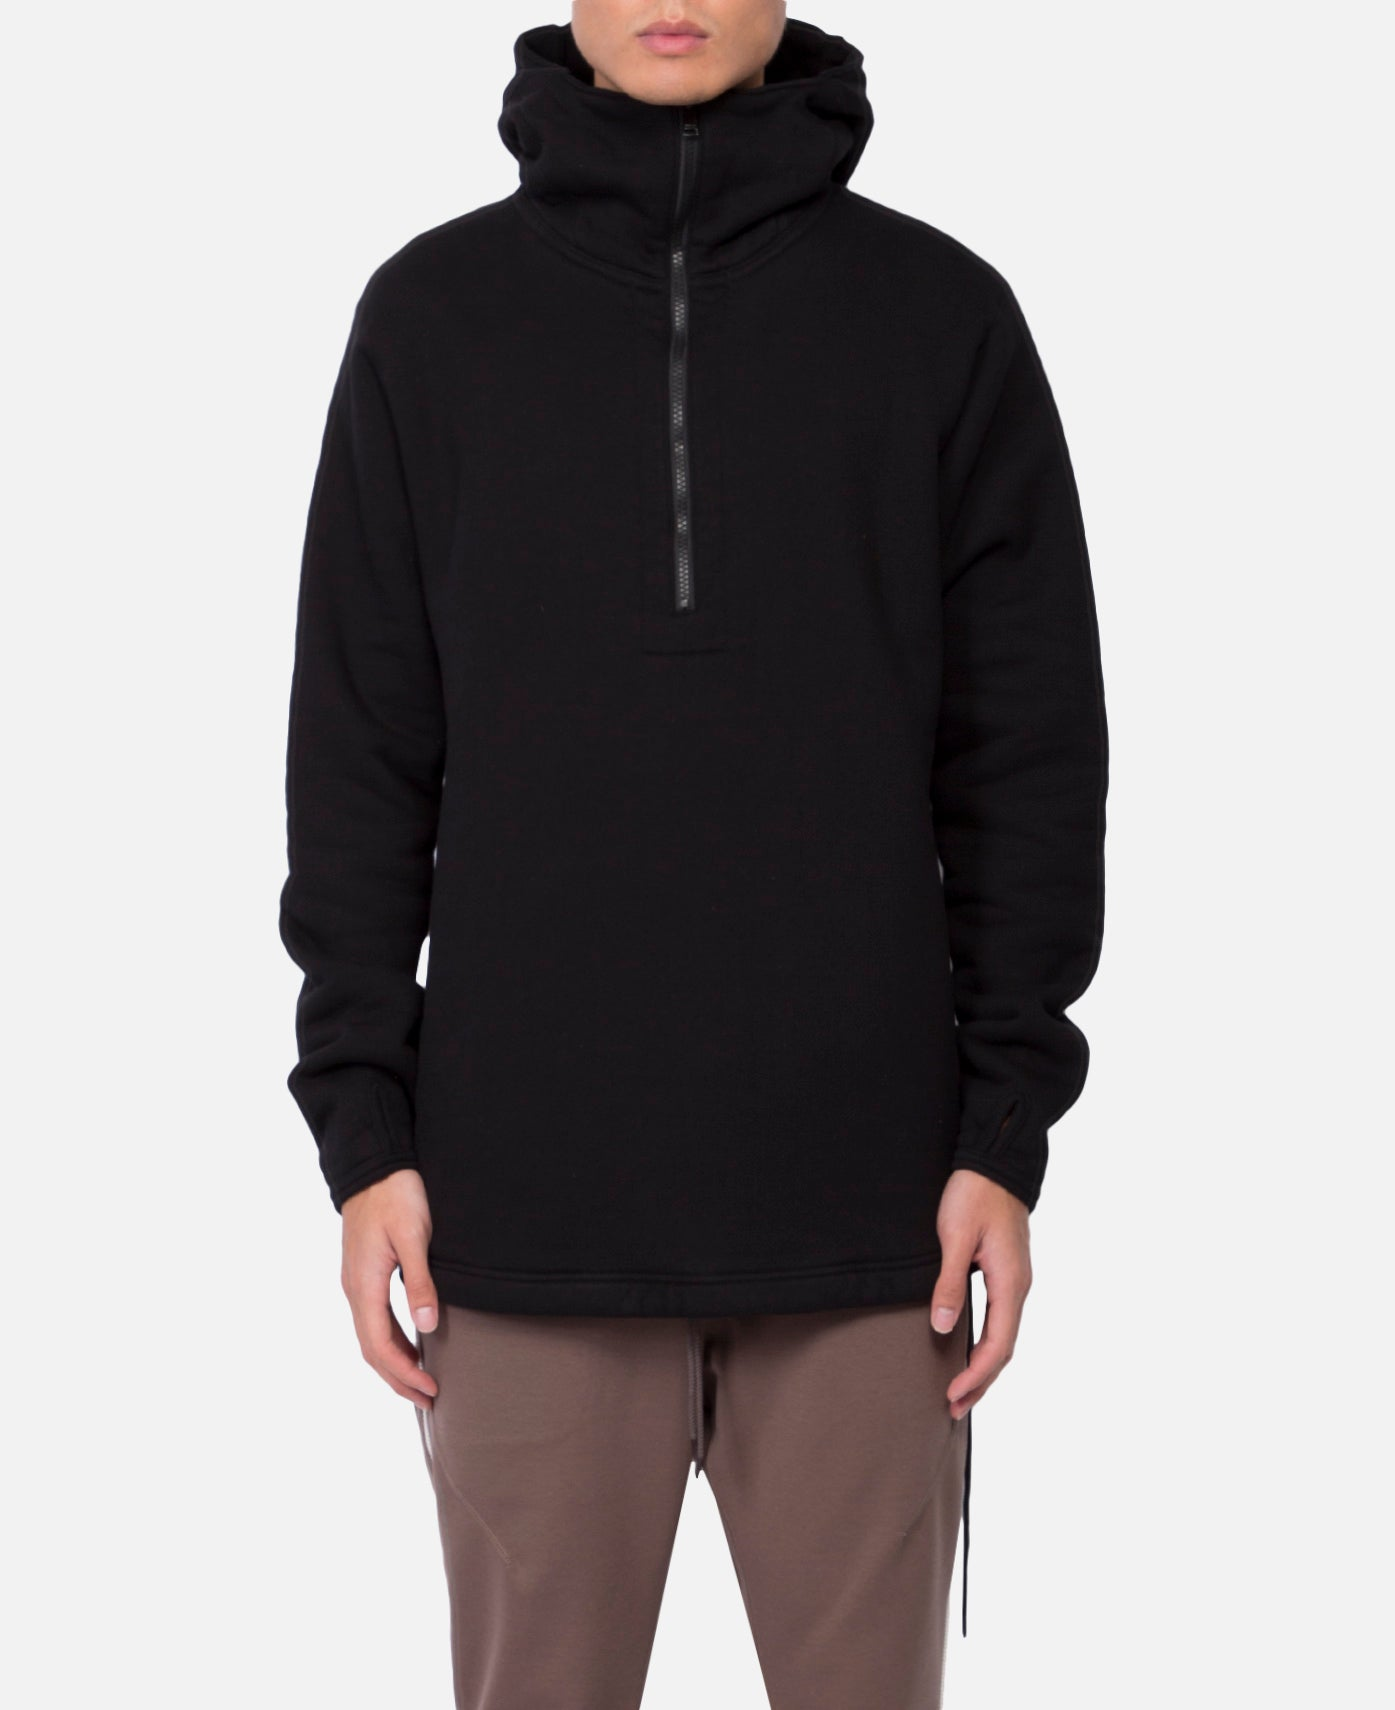 Cyclist Half Zip Hoody Cotton Sweat (Black)